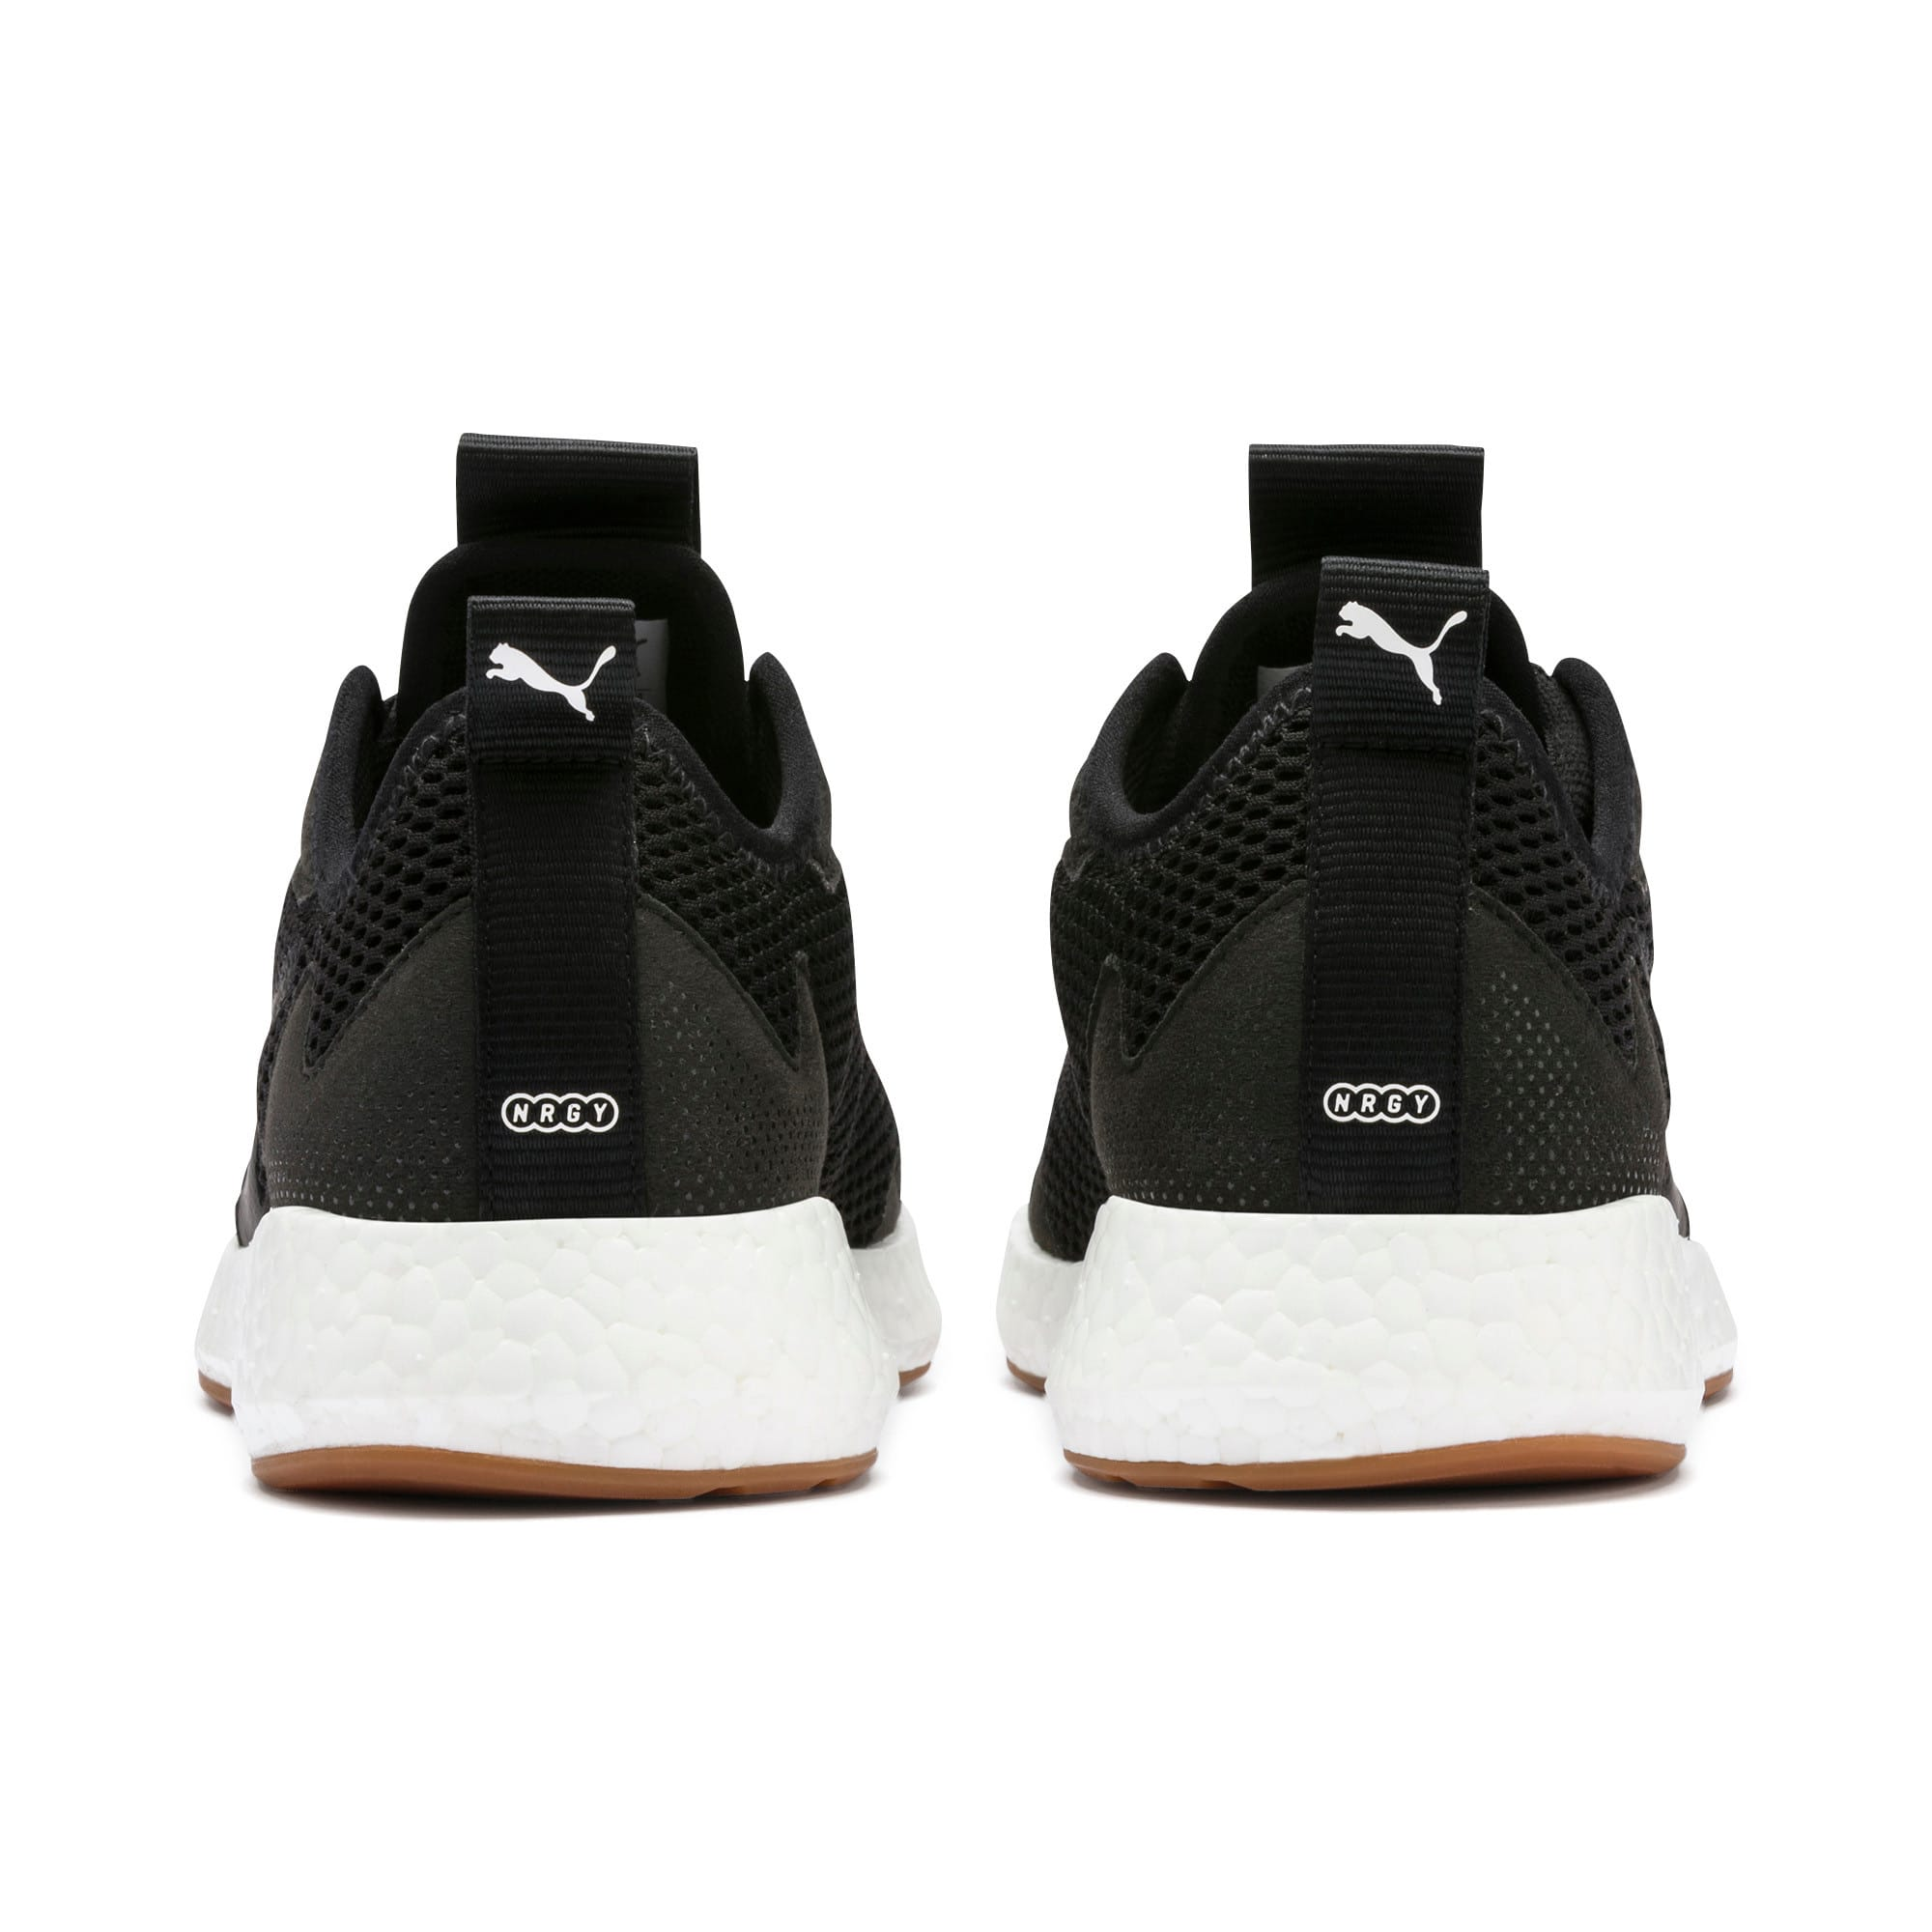 Thumbnail 3 of Chaussure de course NRGY Neko Skim Youth, Puma Black-Puma White, medium